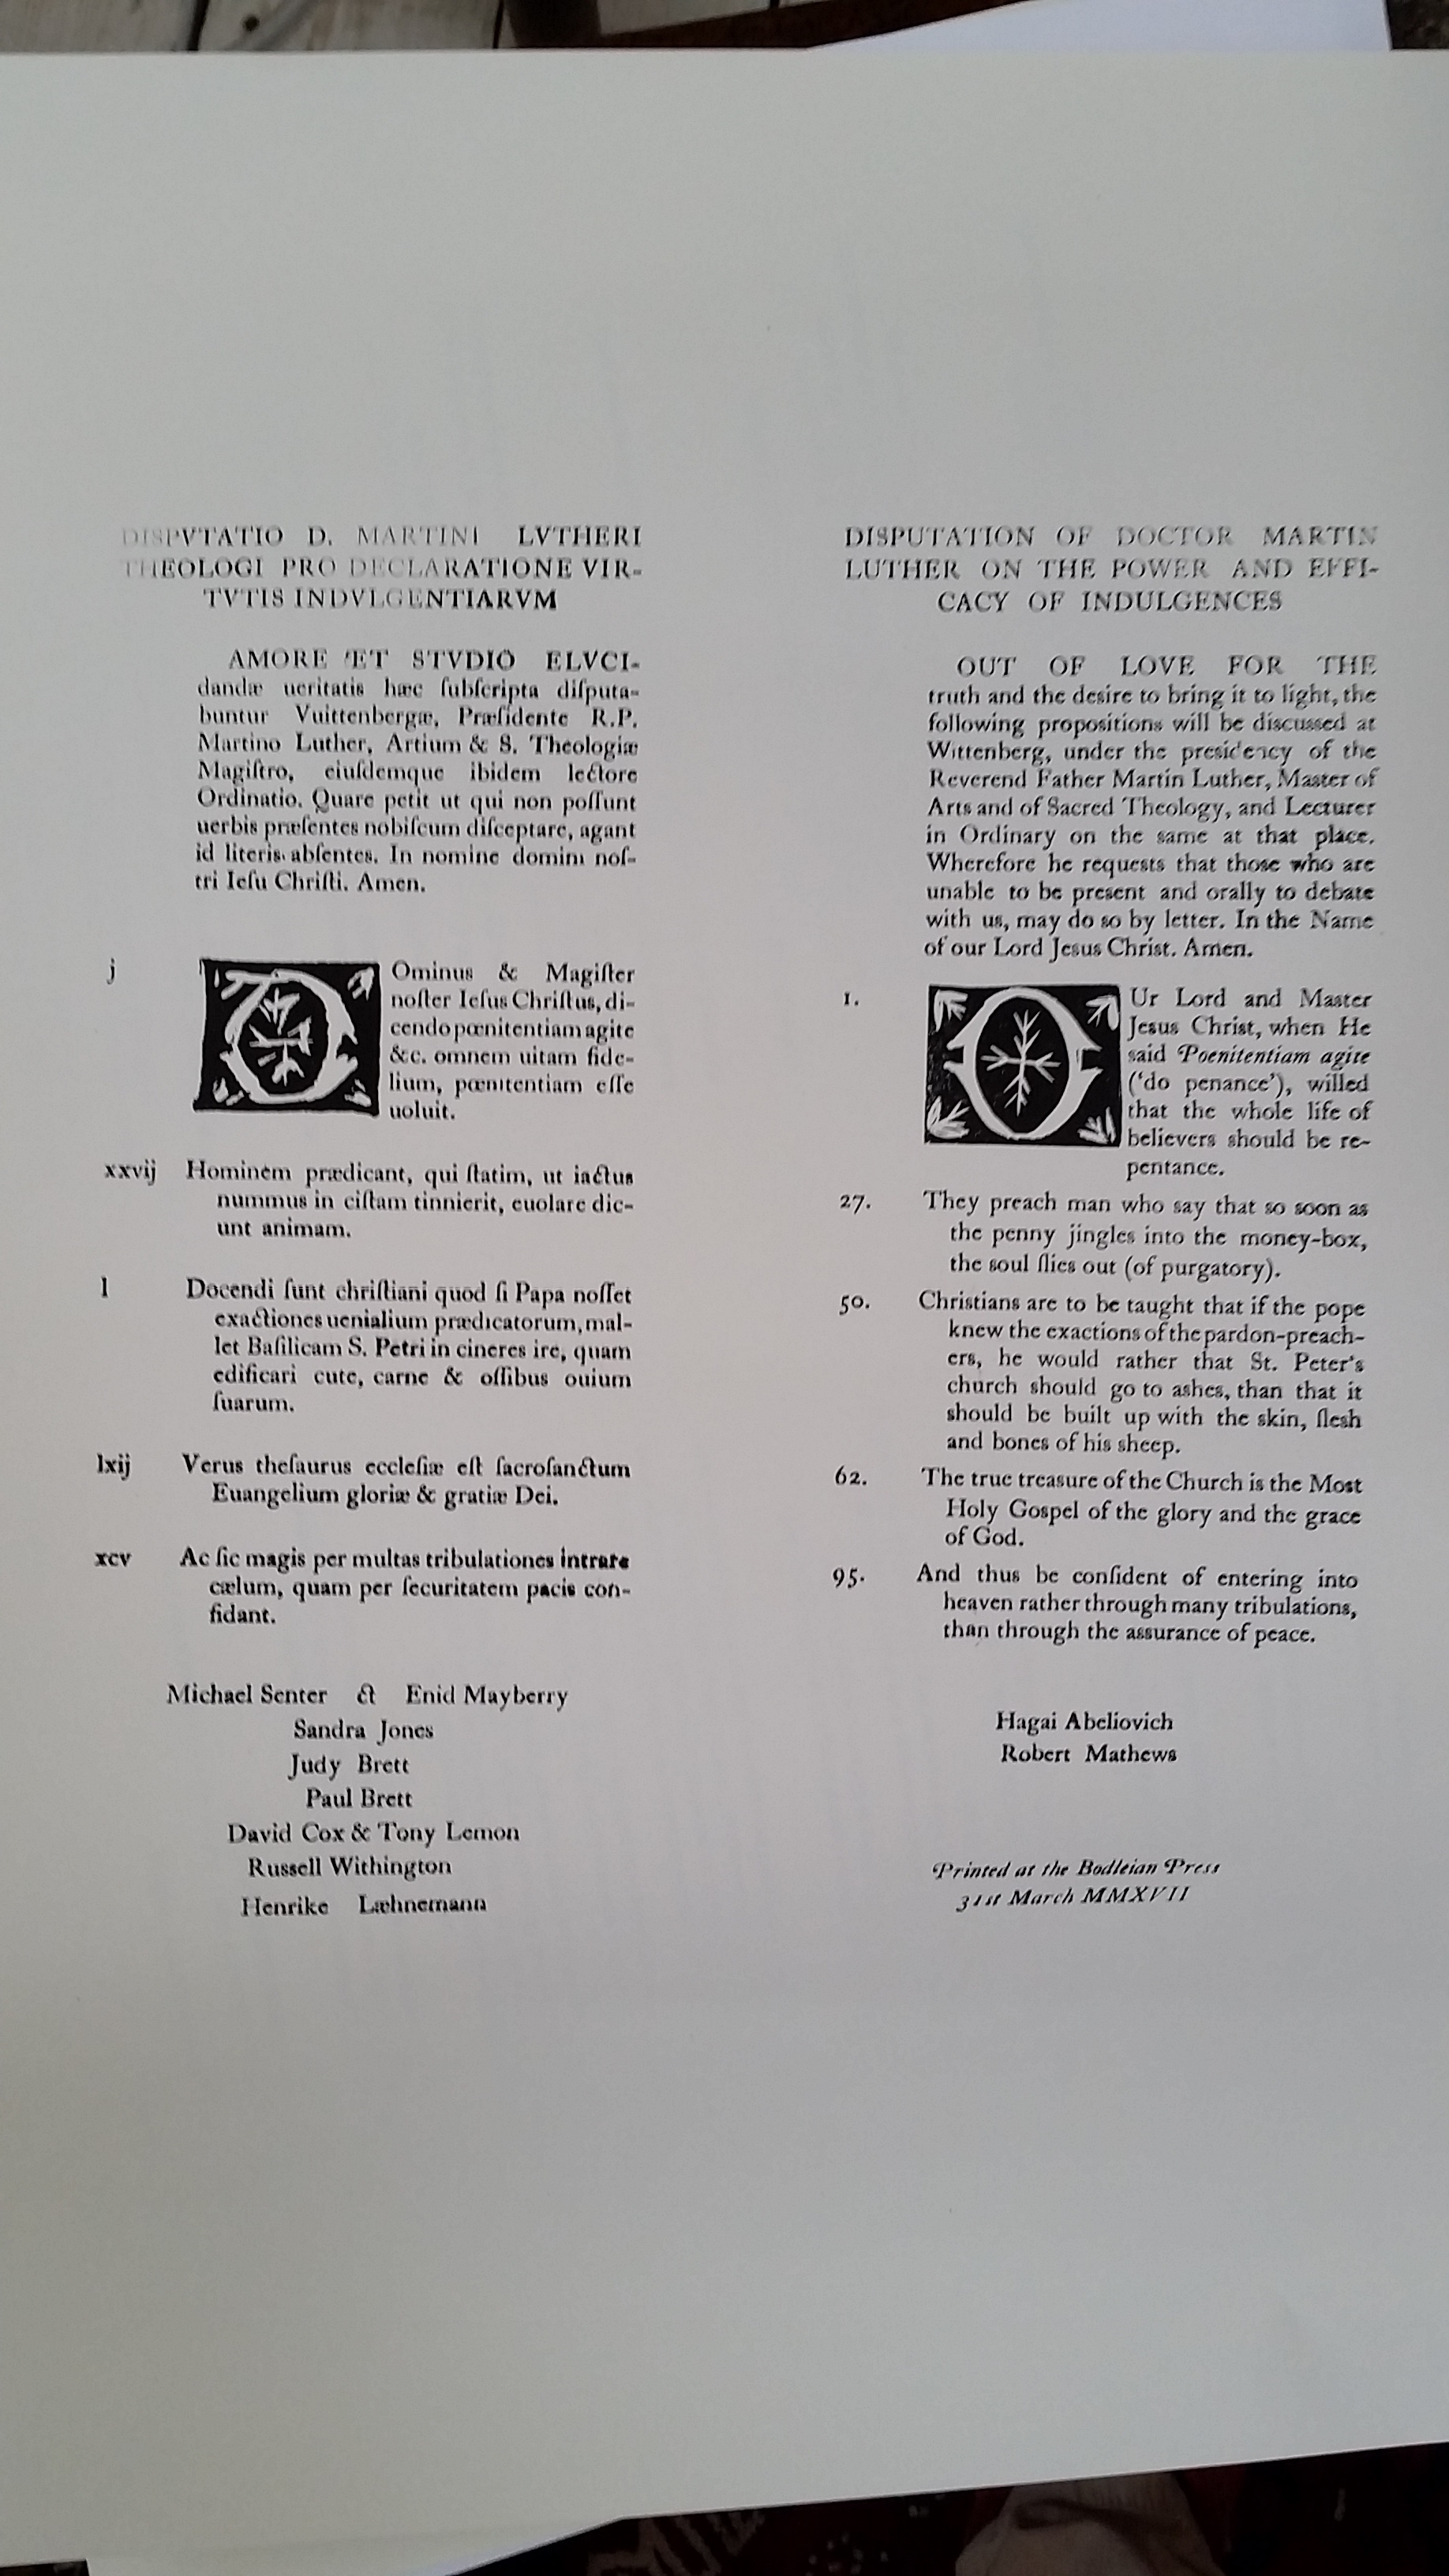 the 95 theses translation Ninety-five theses definition, the theses of luther against the sale of indulgences in the roman catholic church, posted by him on the door of a church in wittenberg.